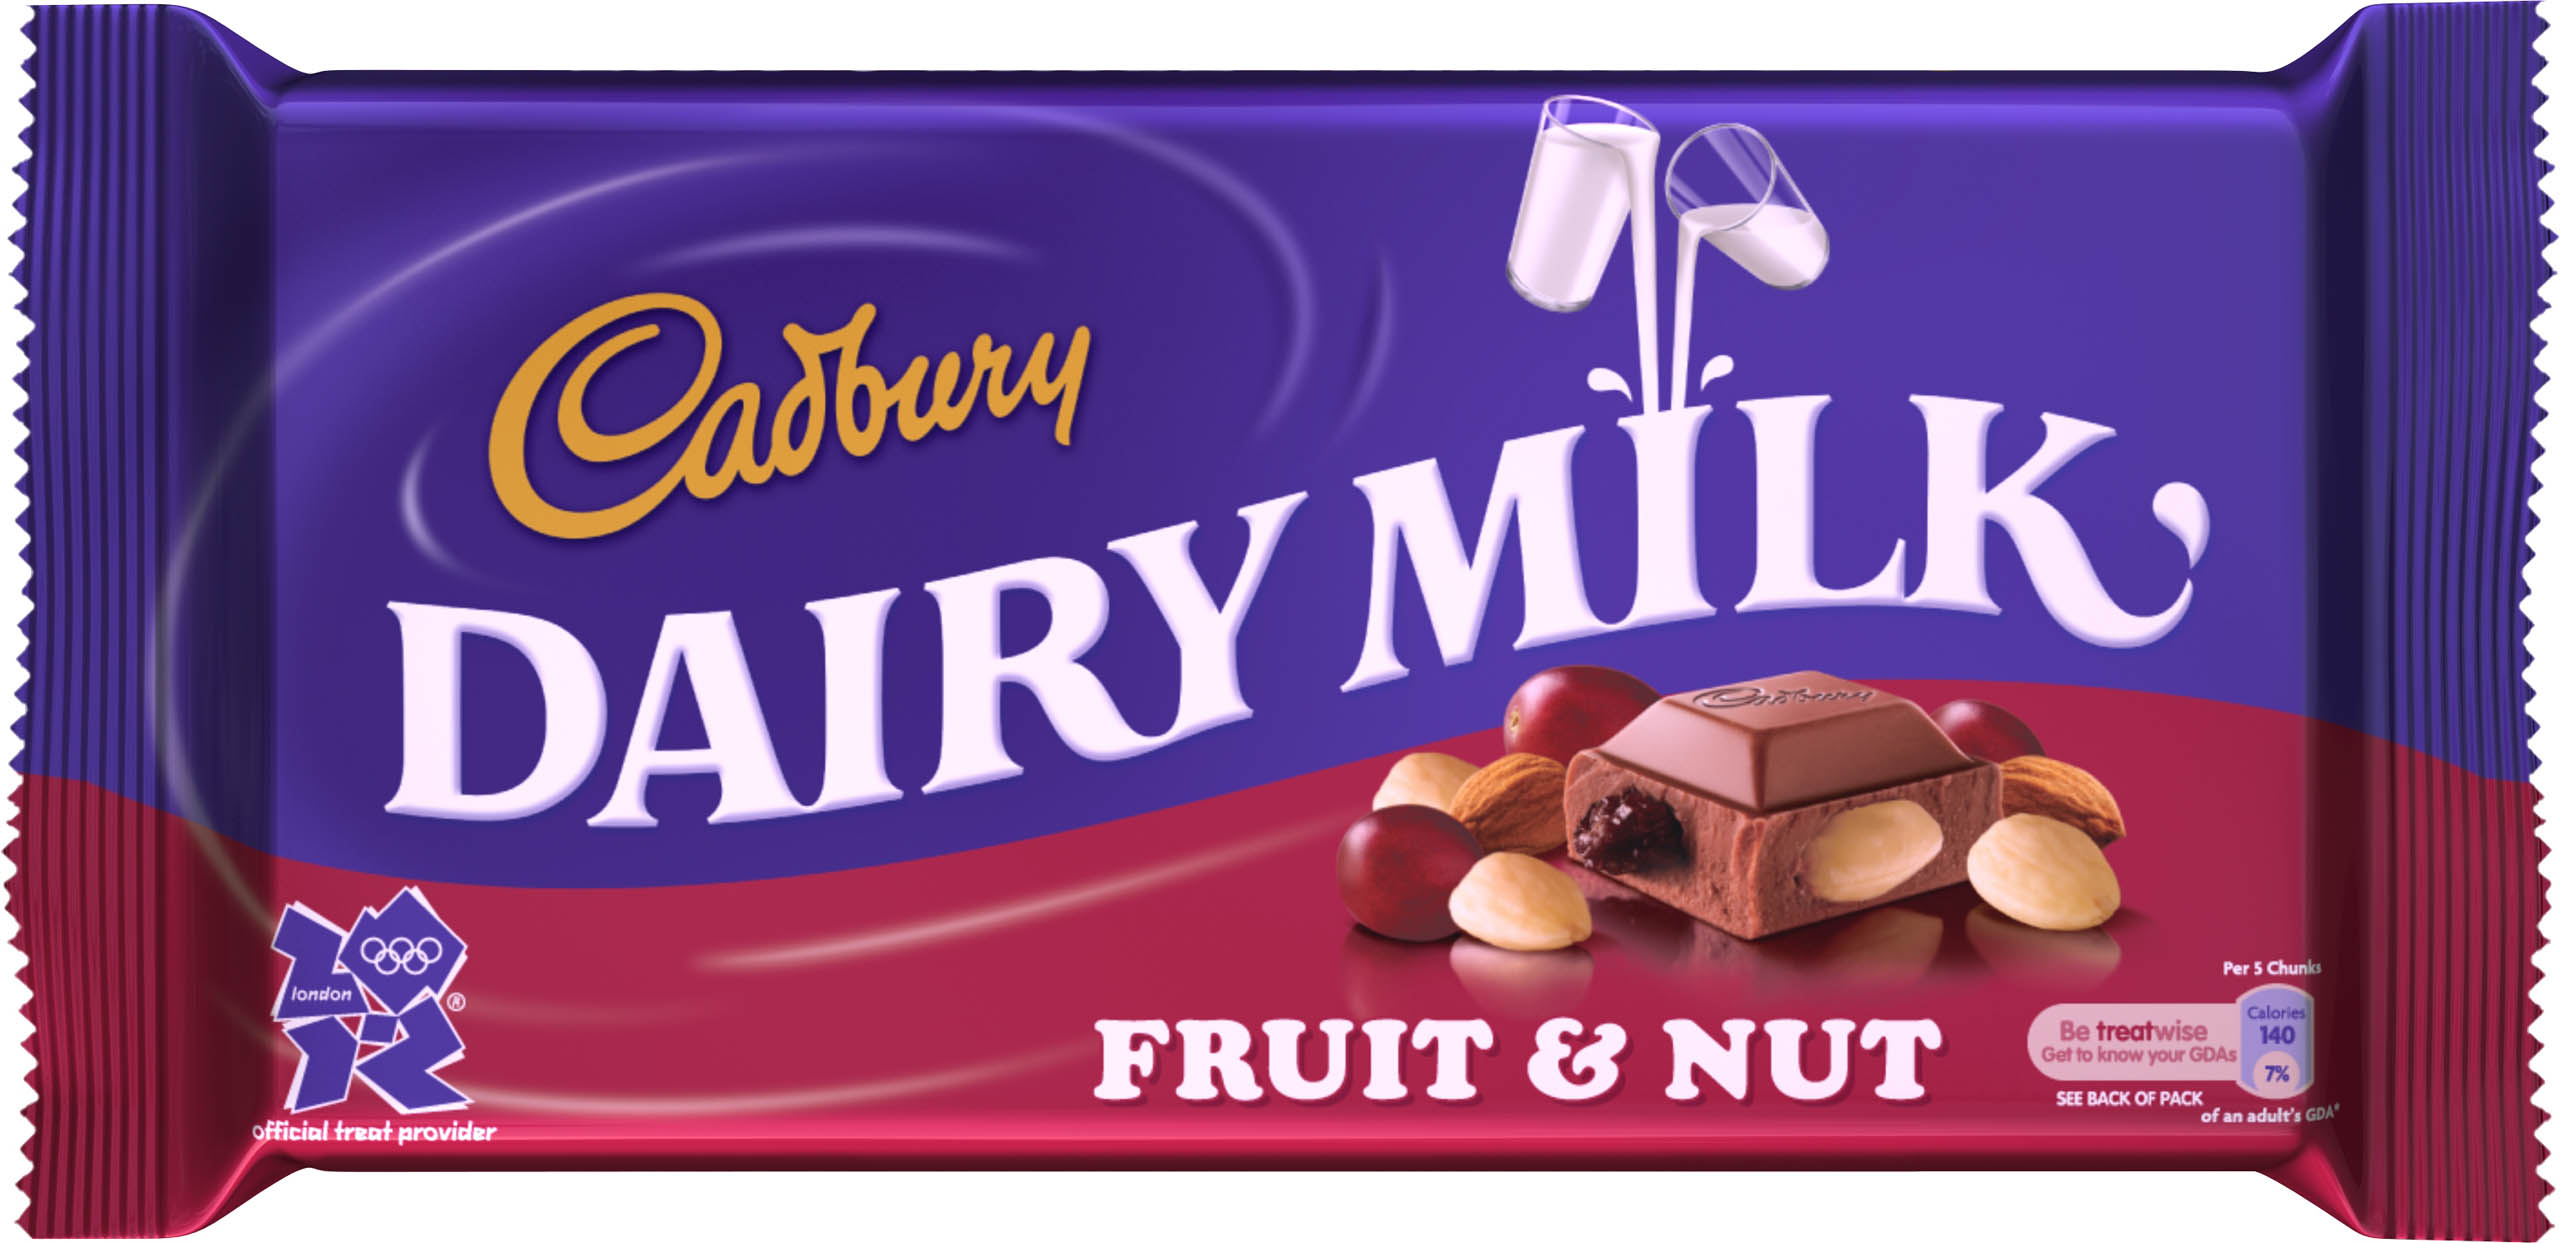 Dairy Milk Silk Chocolate Wallpaper